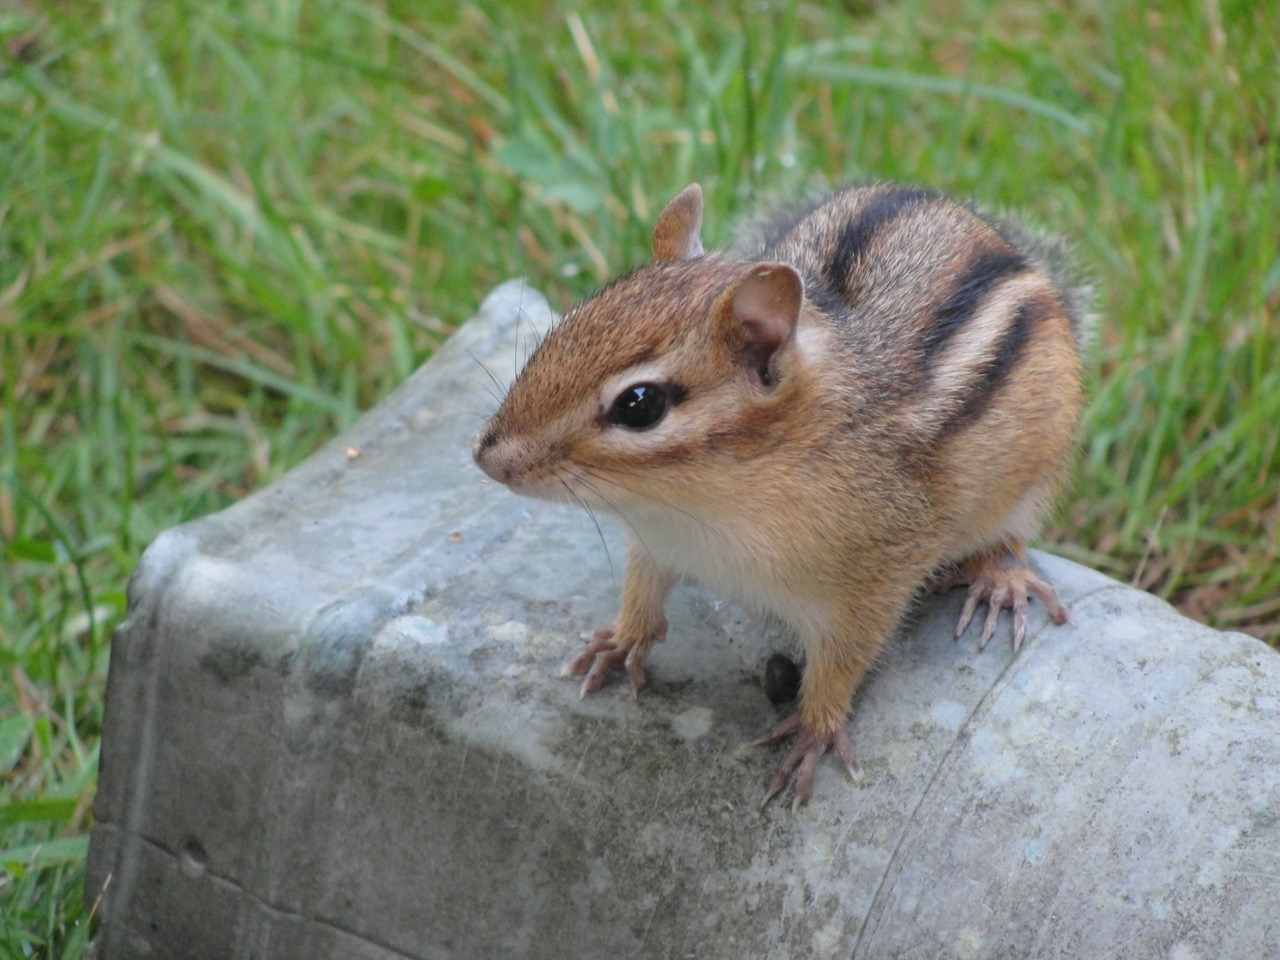 Pretty Chipmunks Without Killing M Chipmunk August 2015 Finding Our Way Home Getting Rid Chipmunks Ly Getting Rid houzz 01 Getting Rid Of Chipmunks